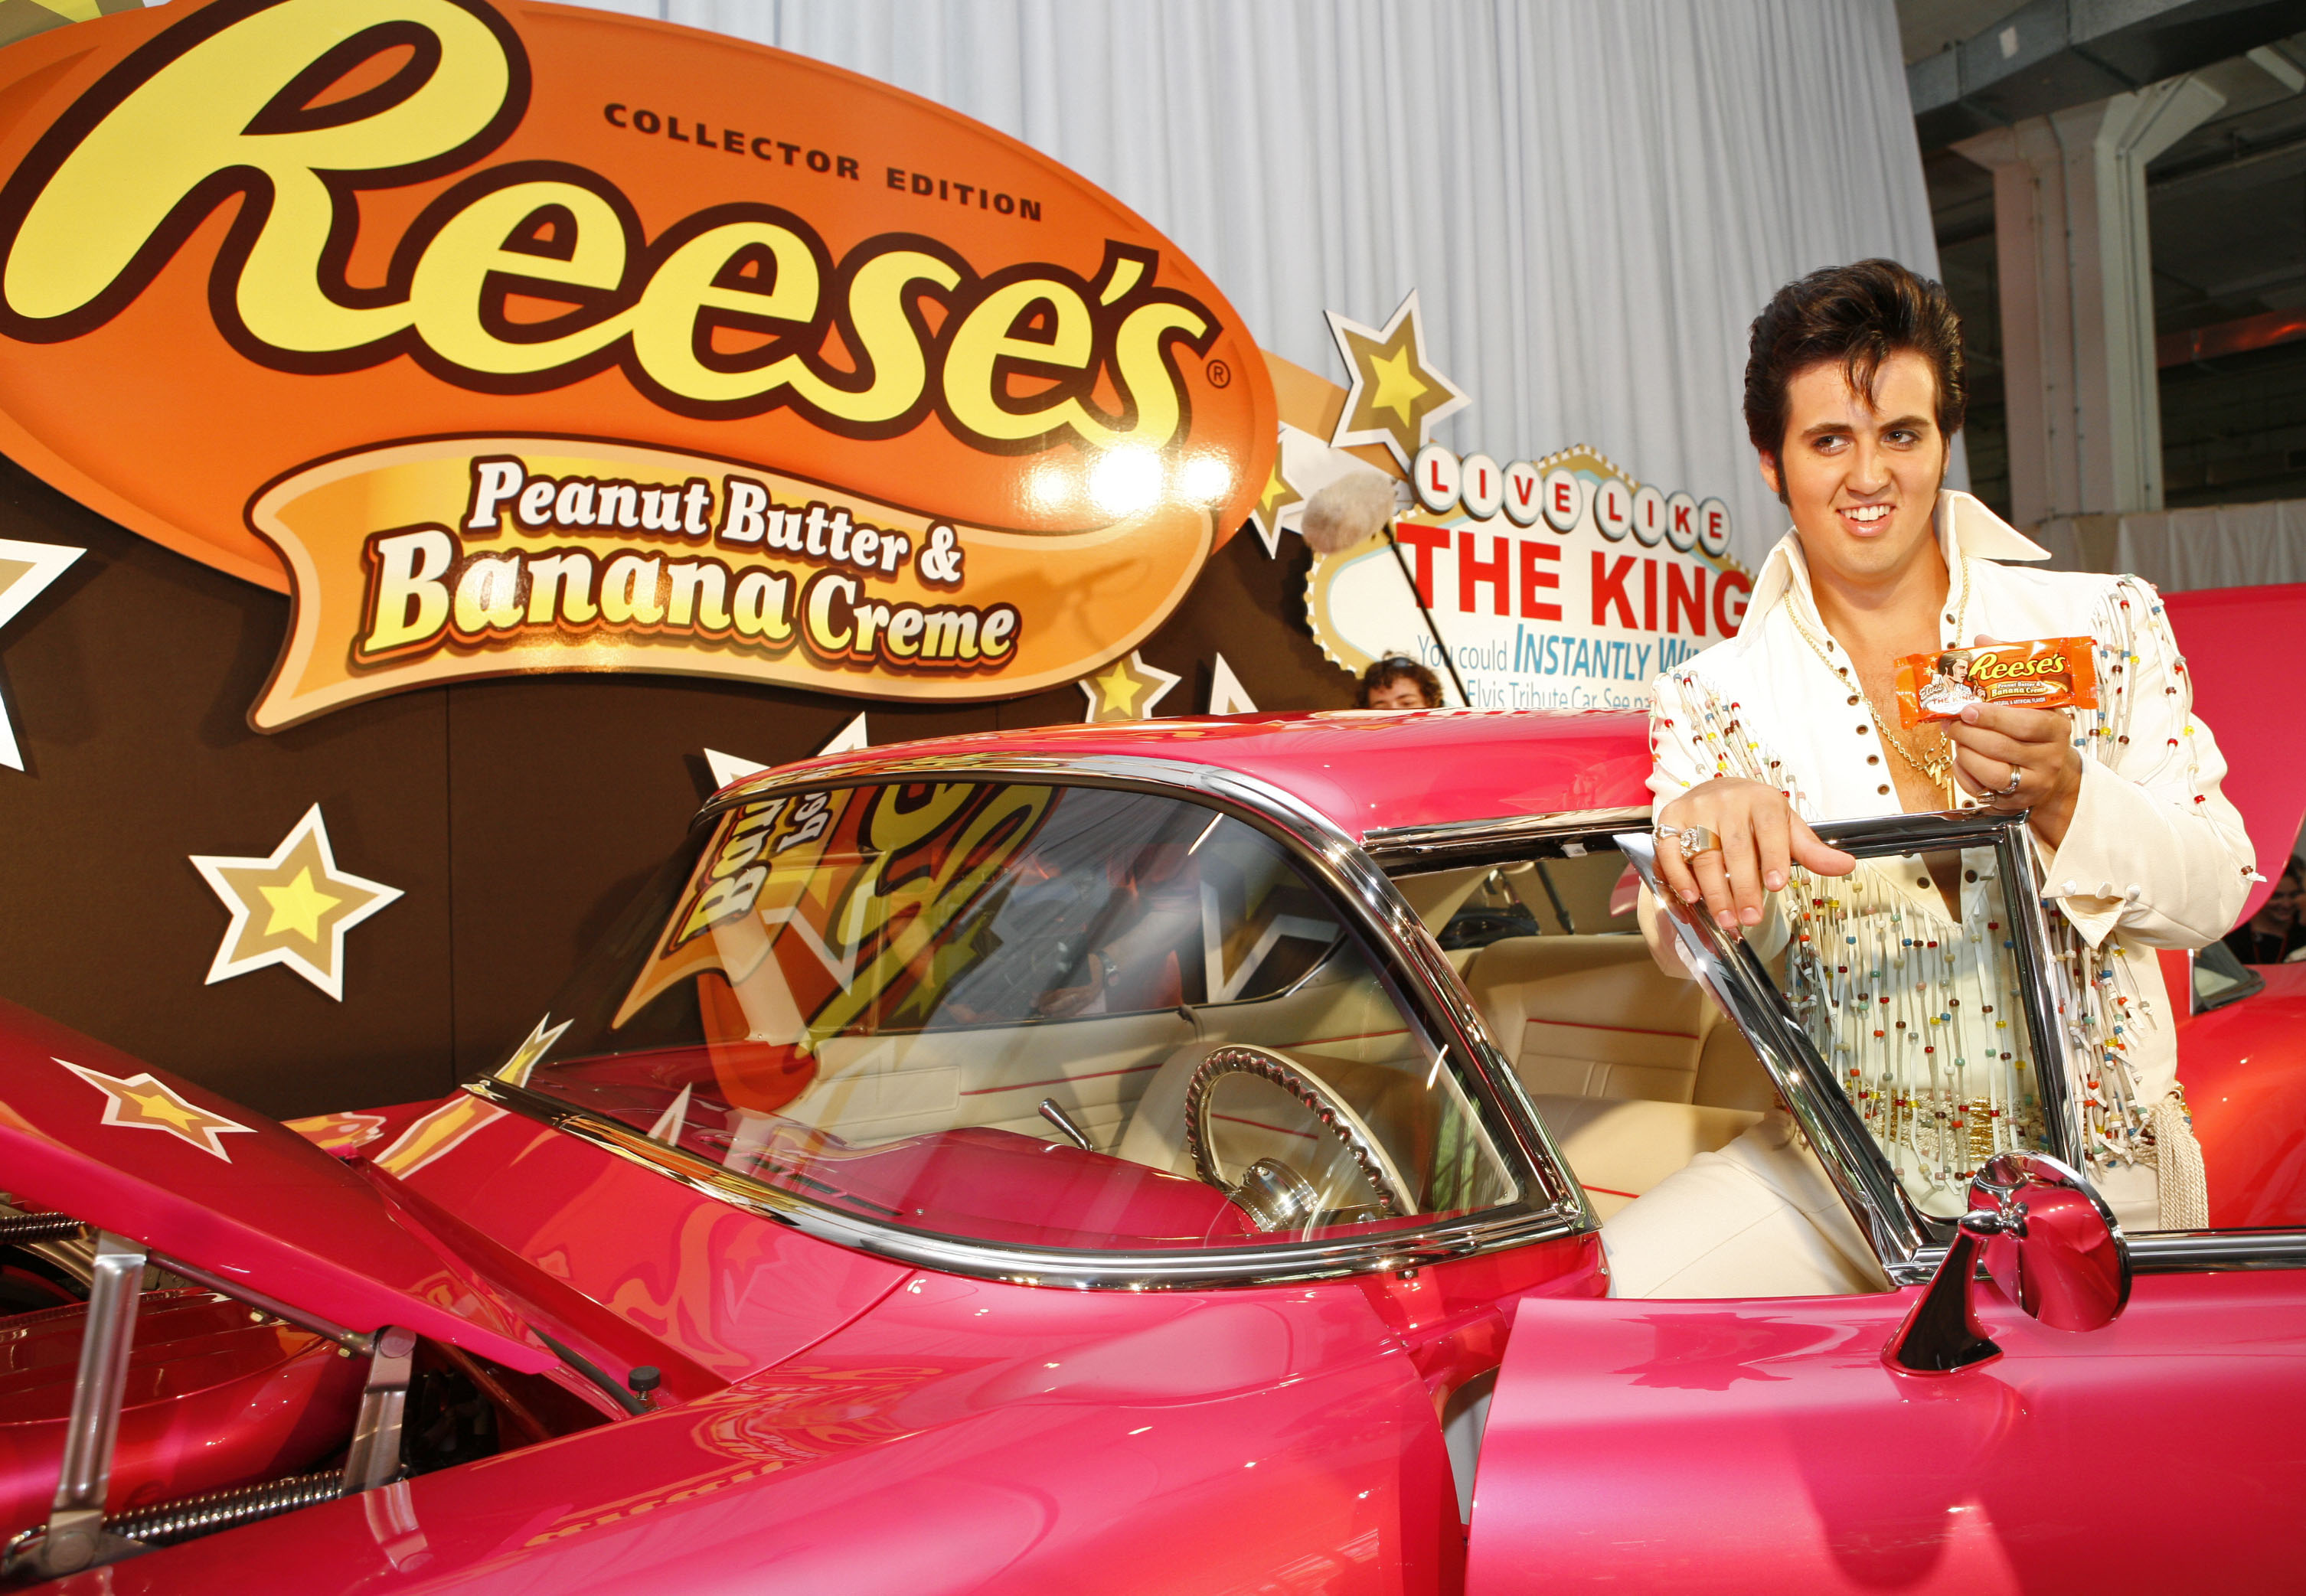 Reese S 174 Lovers All Shook Up Over New Reese S Peanut